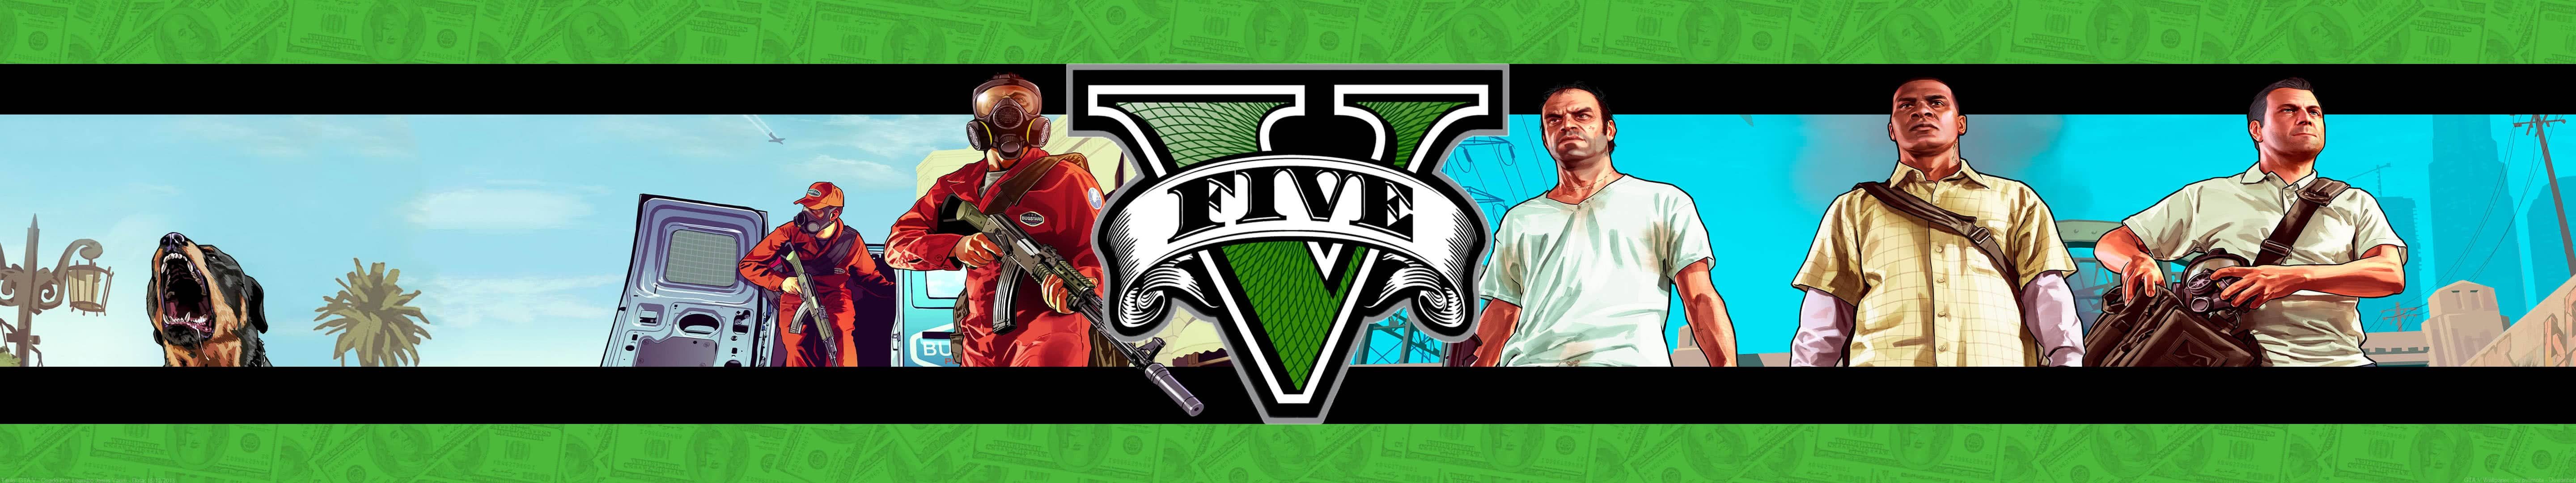 grand theft auto five trevor franklin and michael triple monitor wallpaper